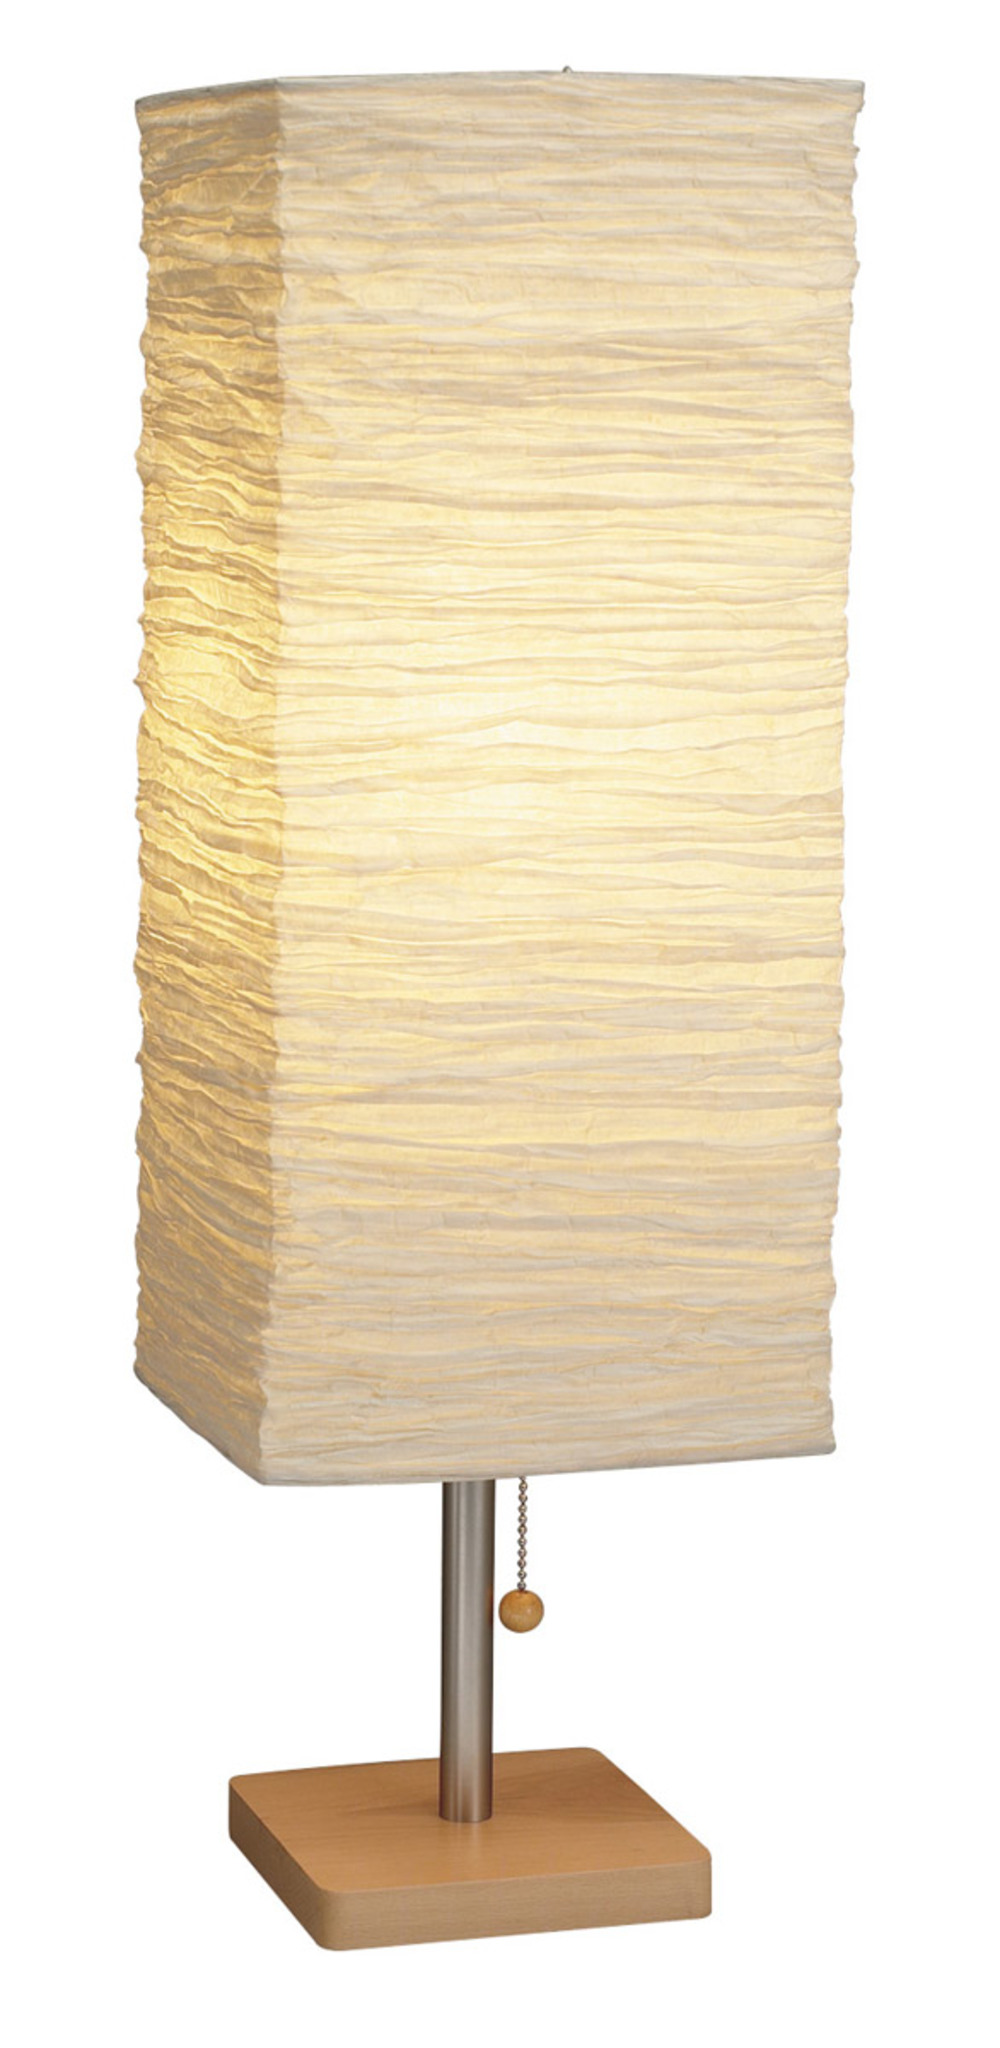 Adesso - Adesso Dune One Light Tall Table Lamp in Natural